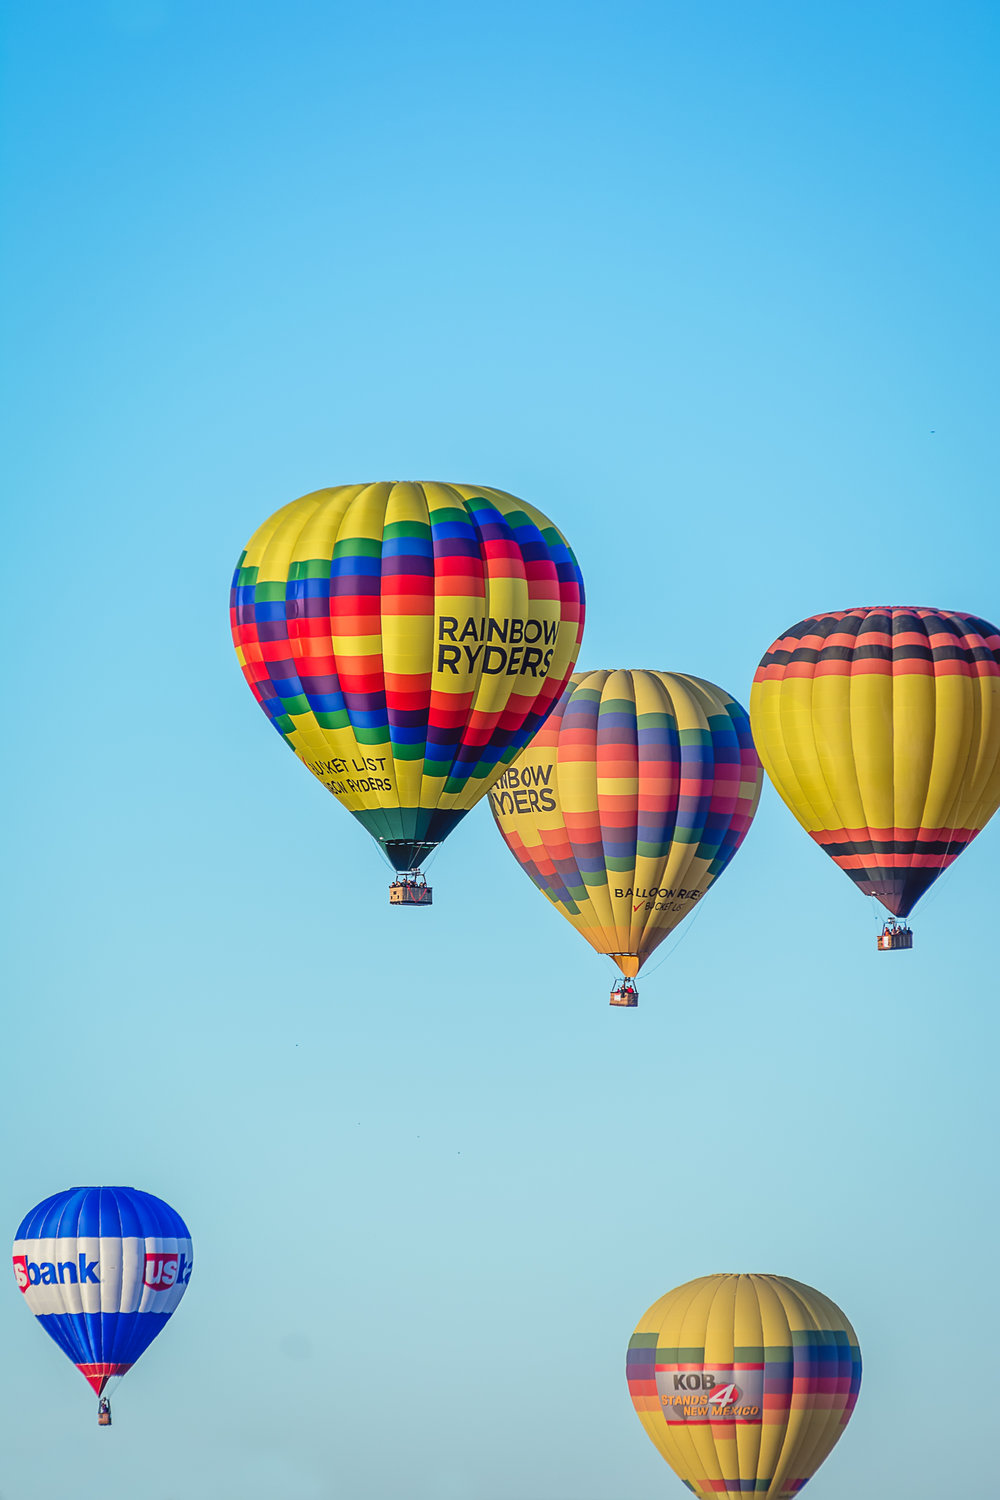 Rainbow Ryders Hot Air Balloon, Hot Air Balloon, Albuquerque Photographer